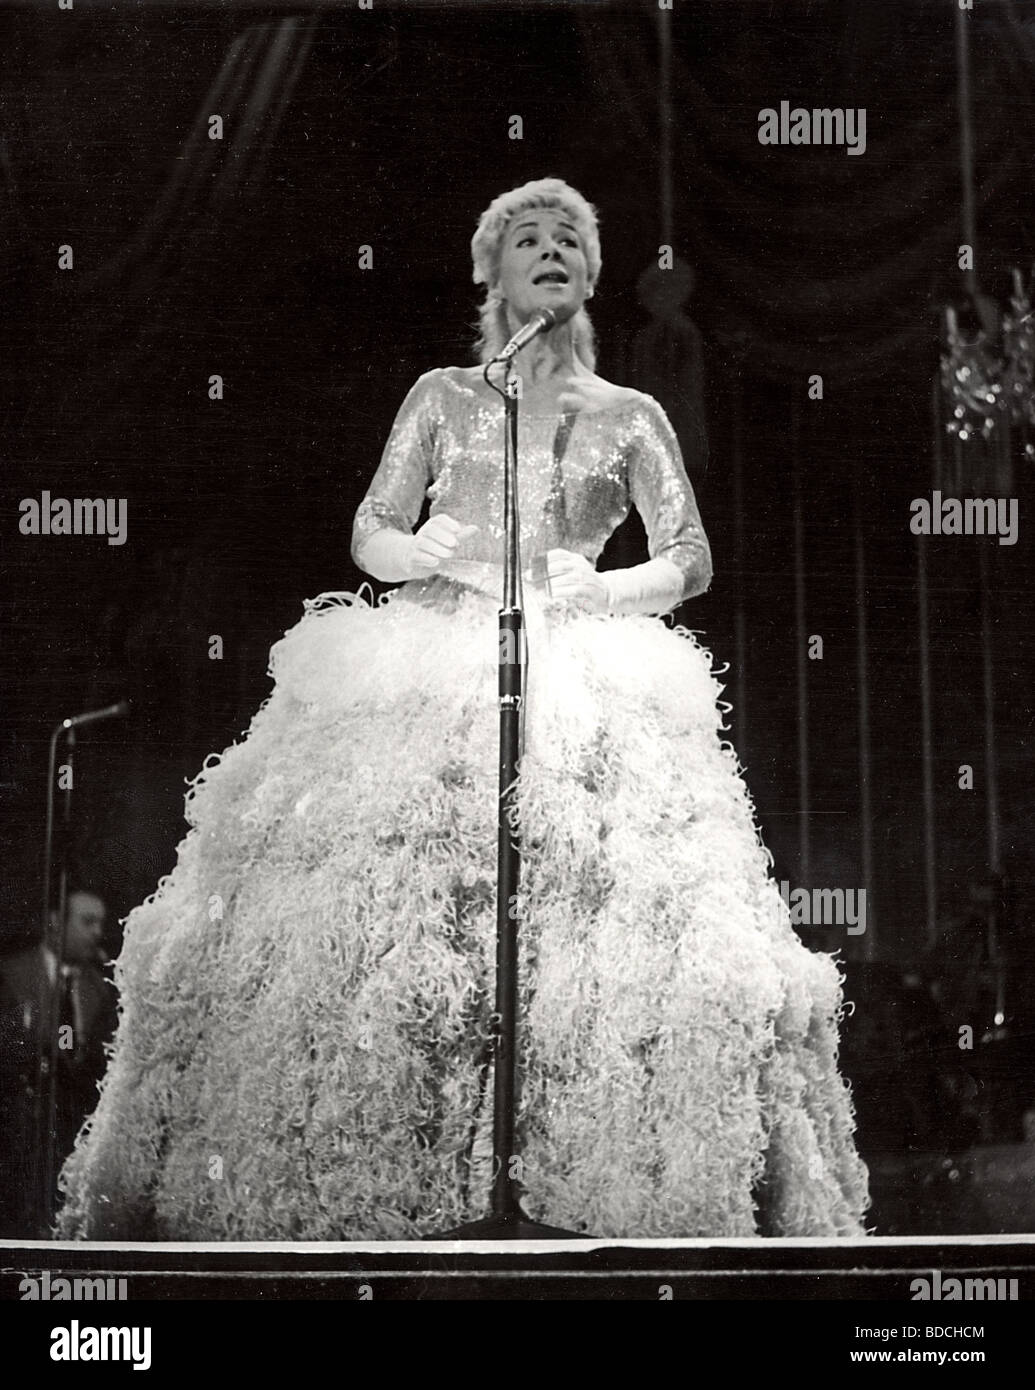 BETTY HUTTON - US singer/actress - Stock Image